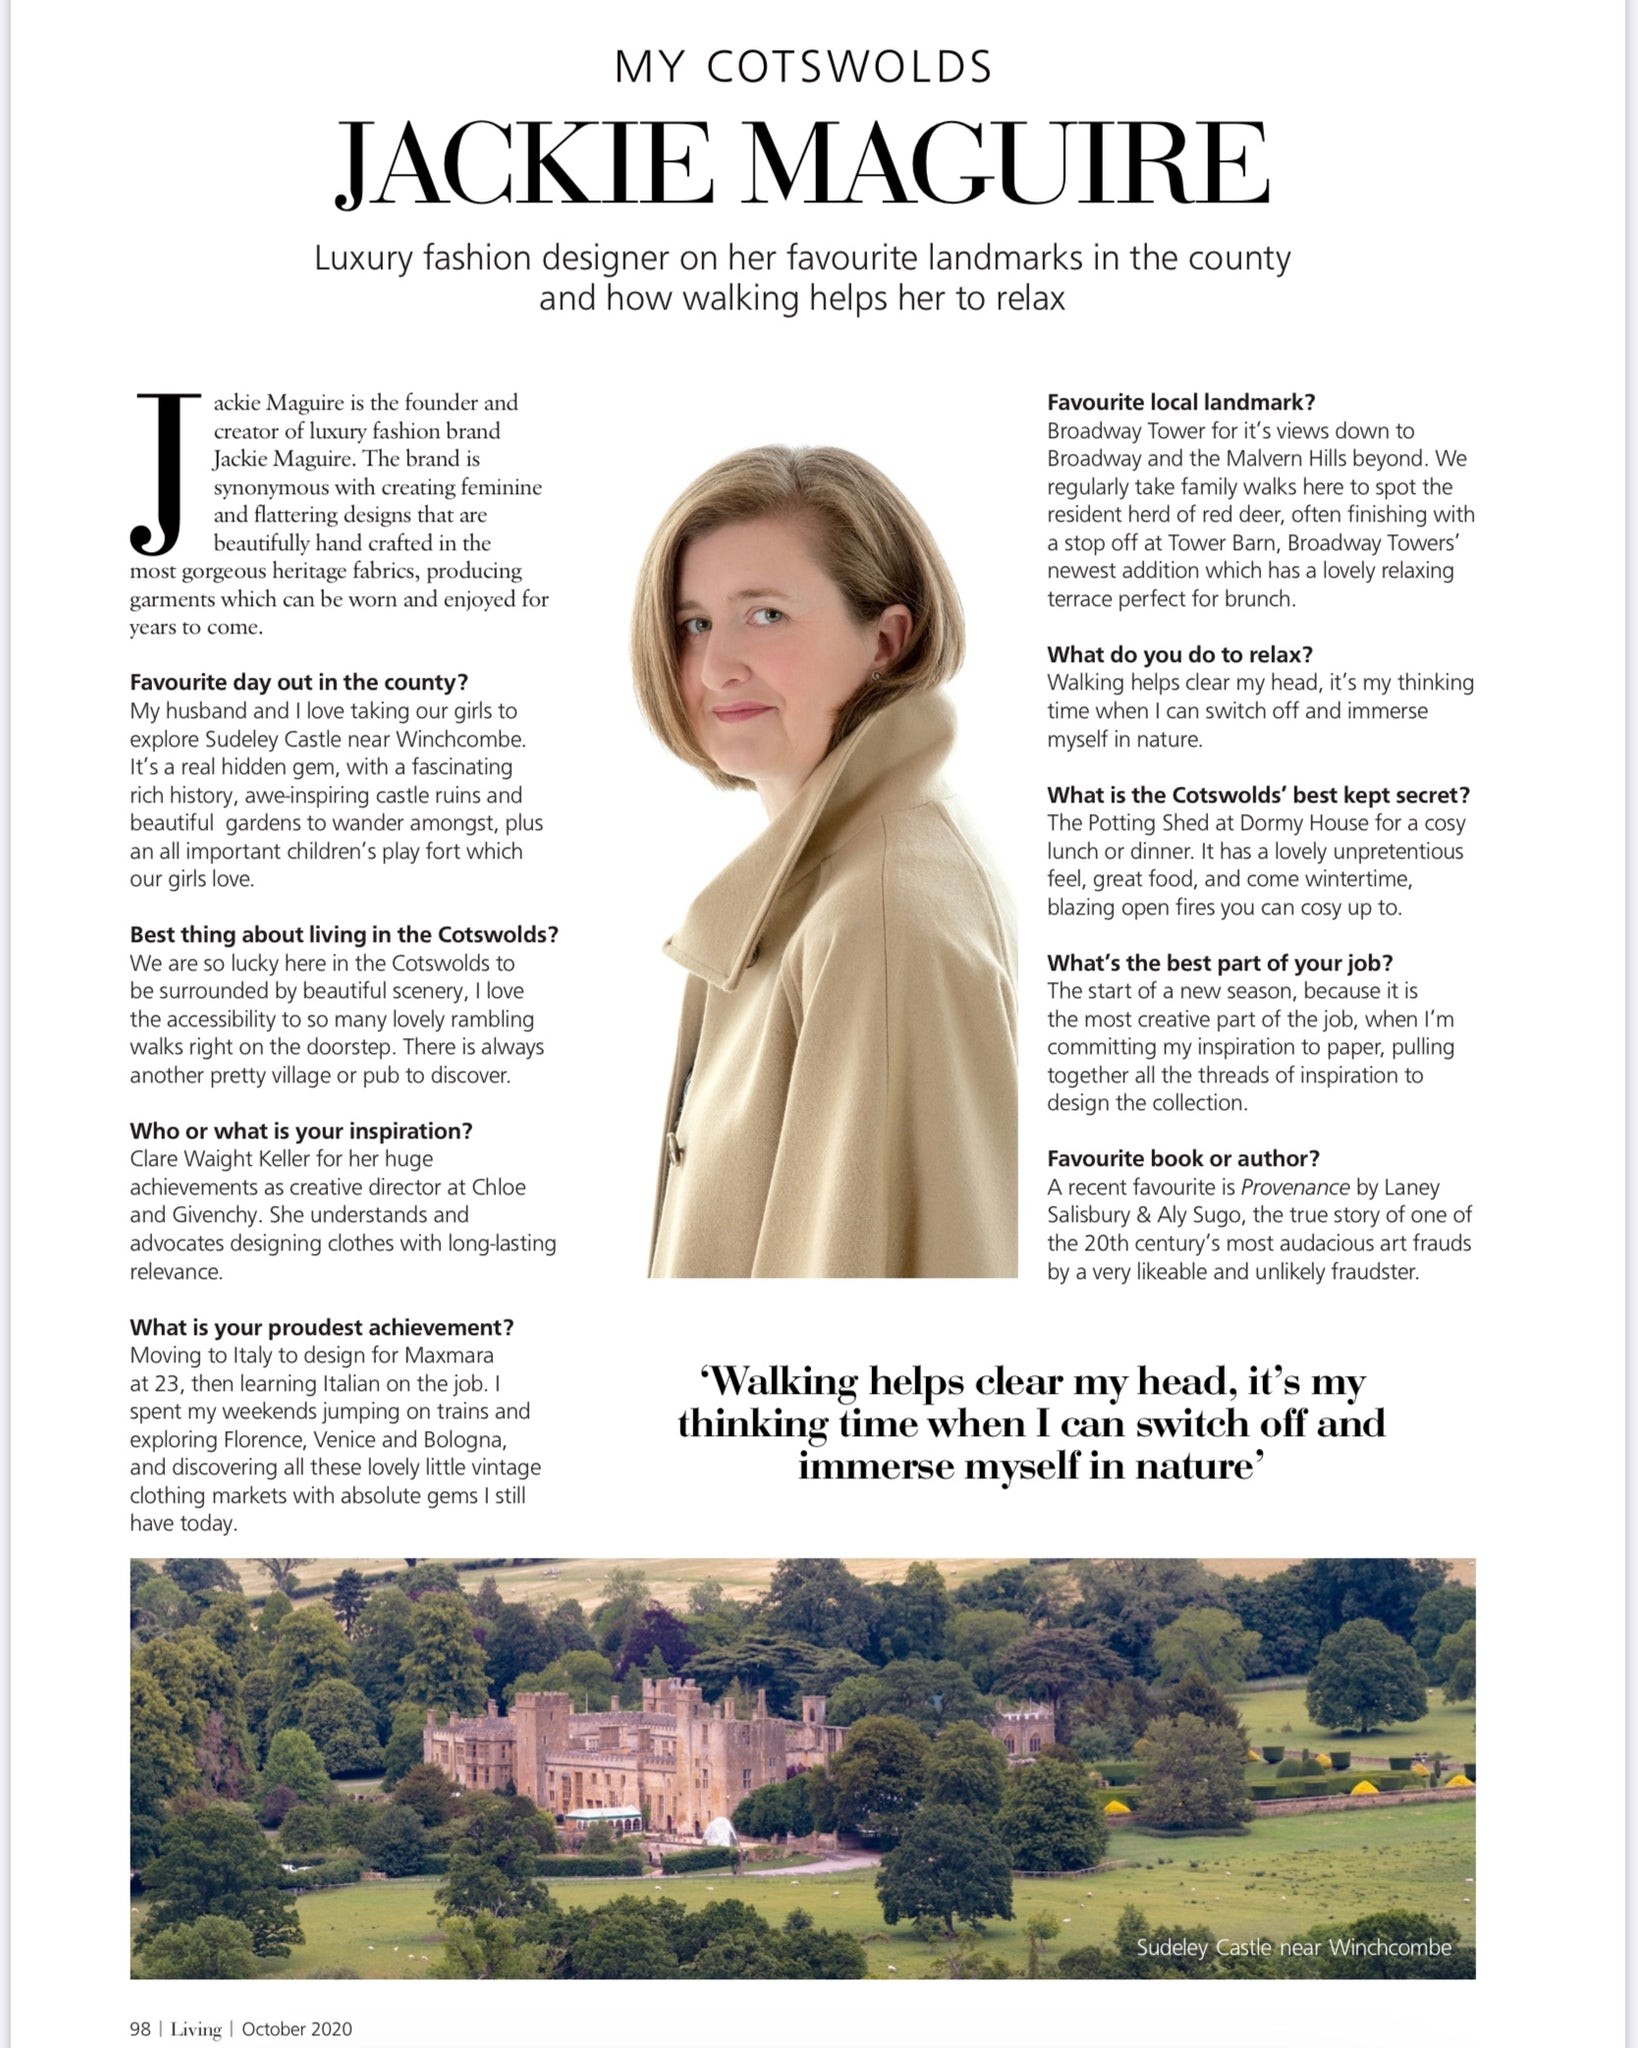 jackiemaguire-magazine-feature-cotswold-living-october2020